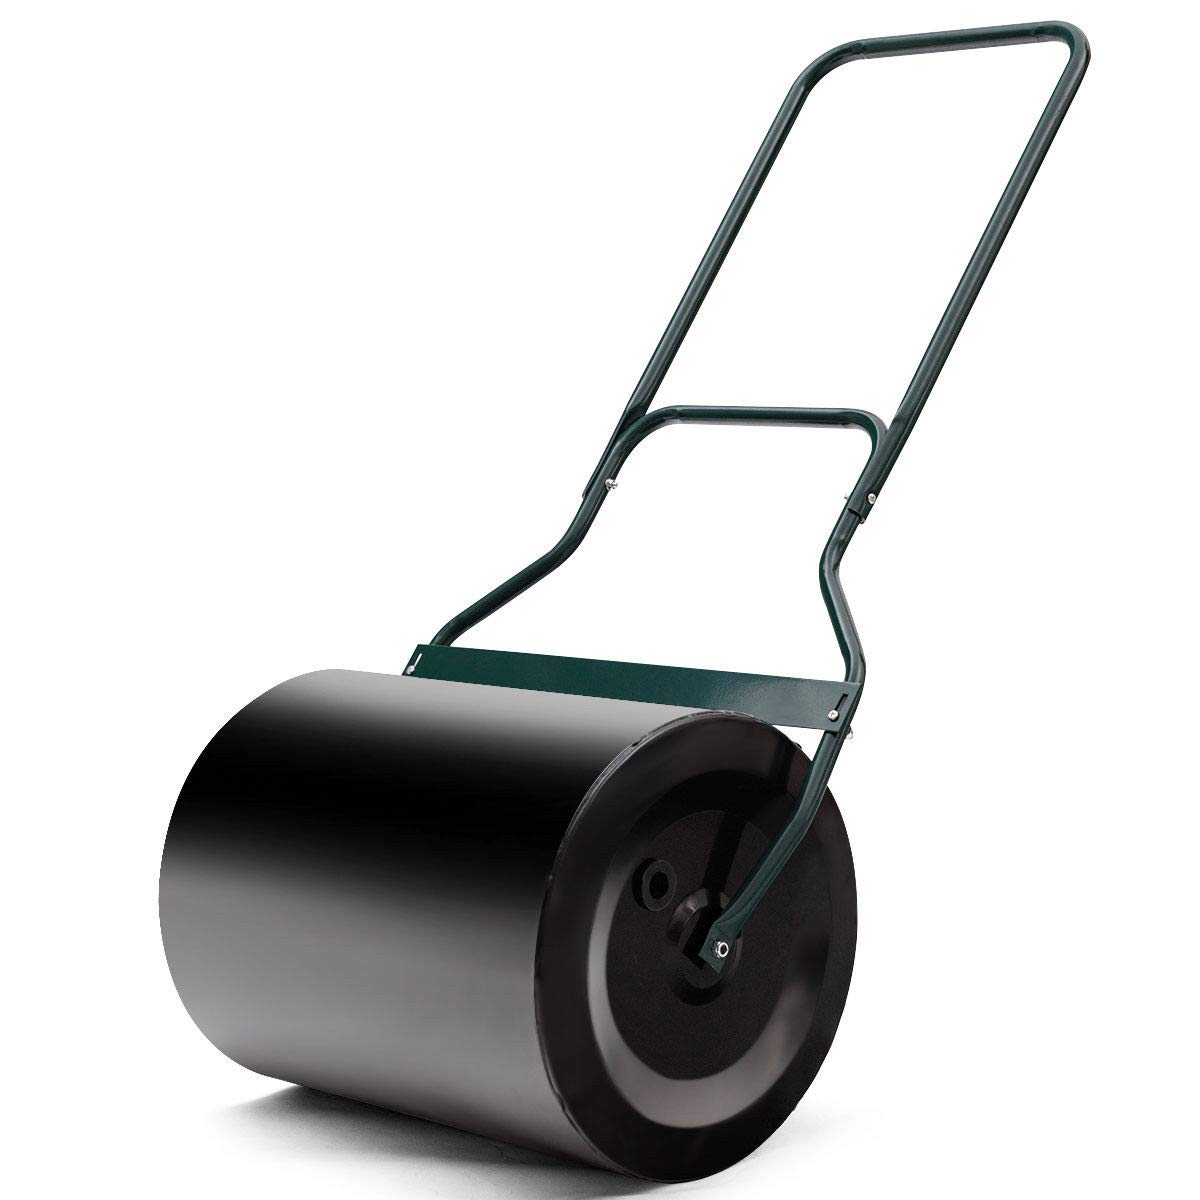 Adumly Size 16''x 19.5'' Heavy Duty Poly Push Tow Lawn Roller Poly Roller by Adumly